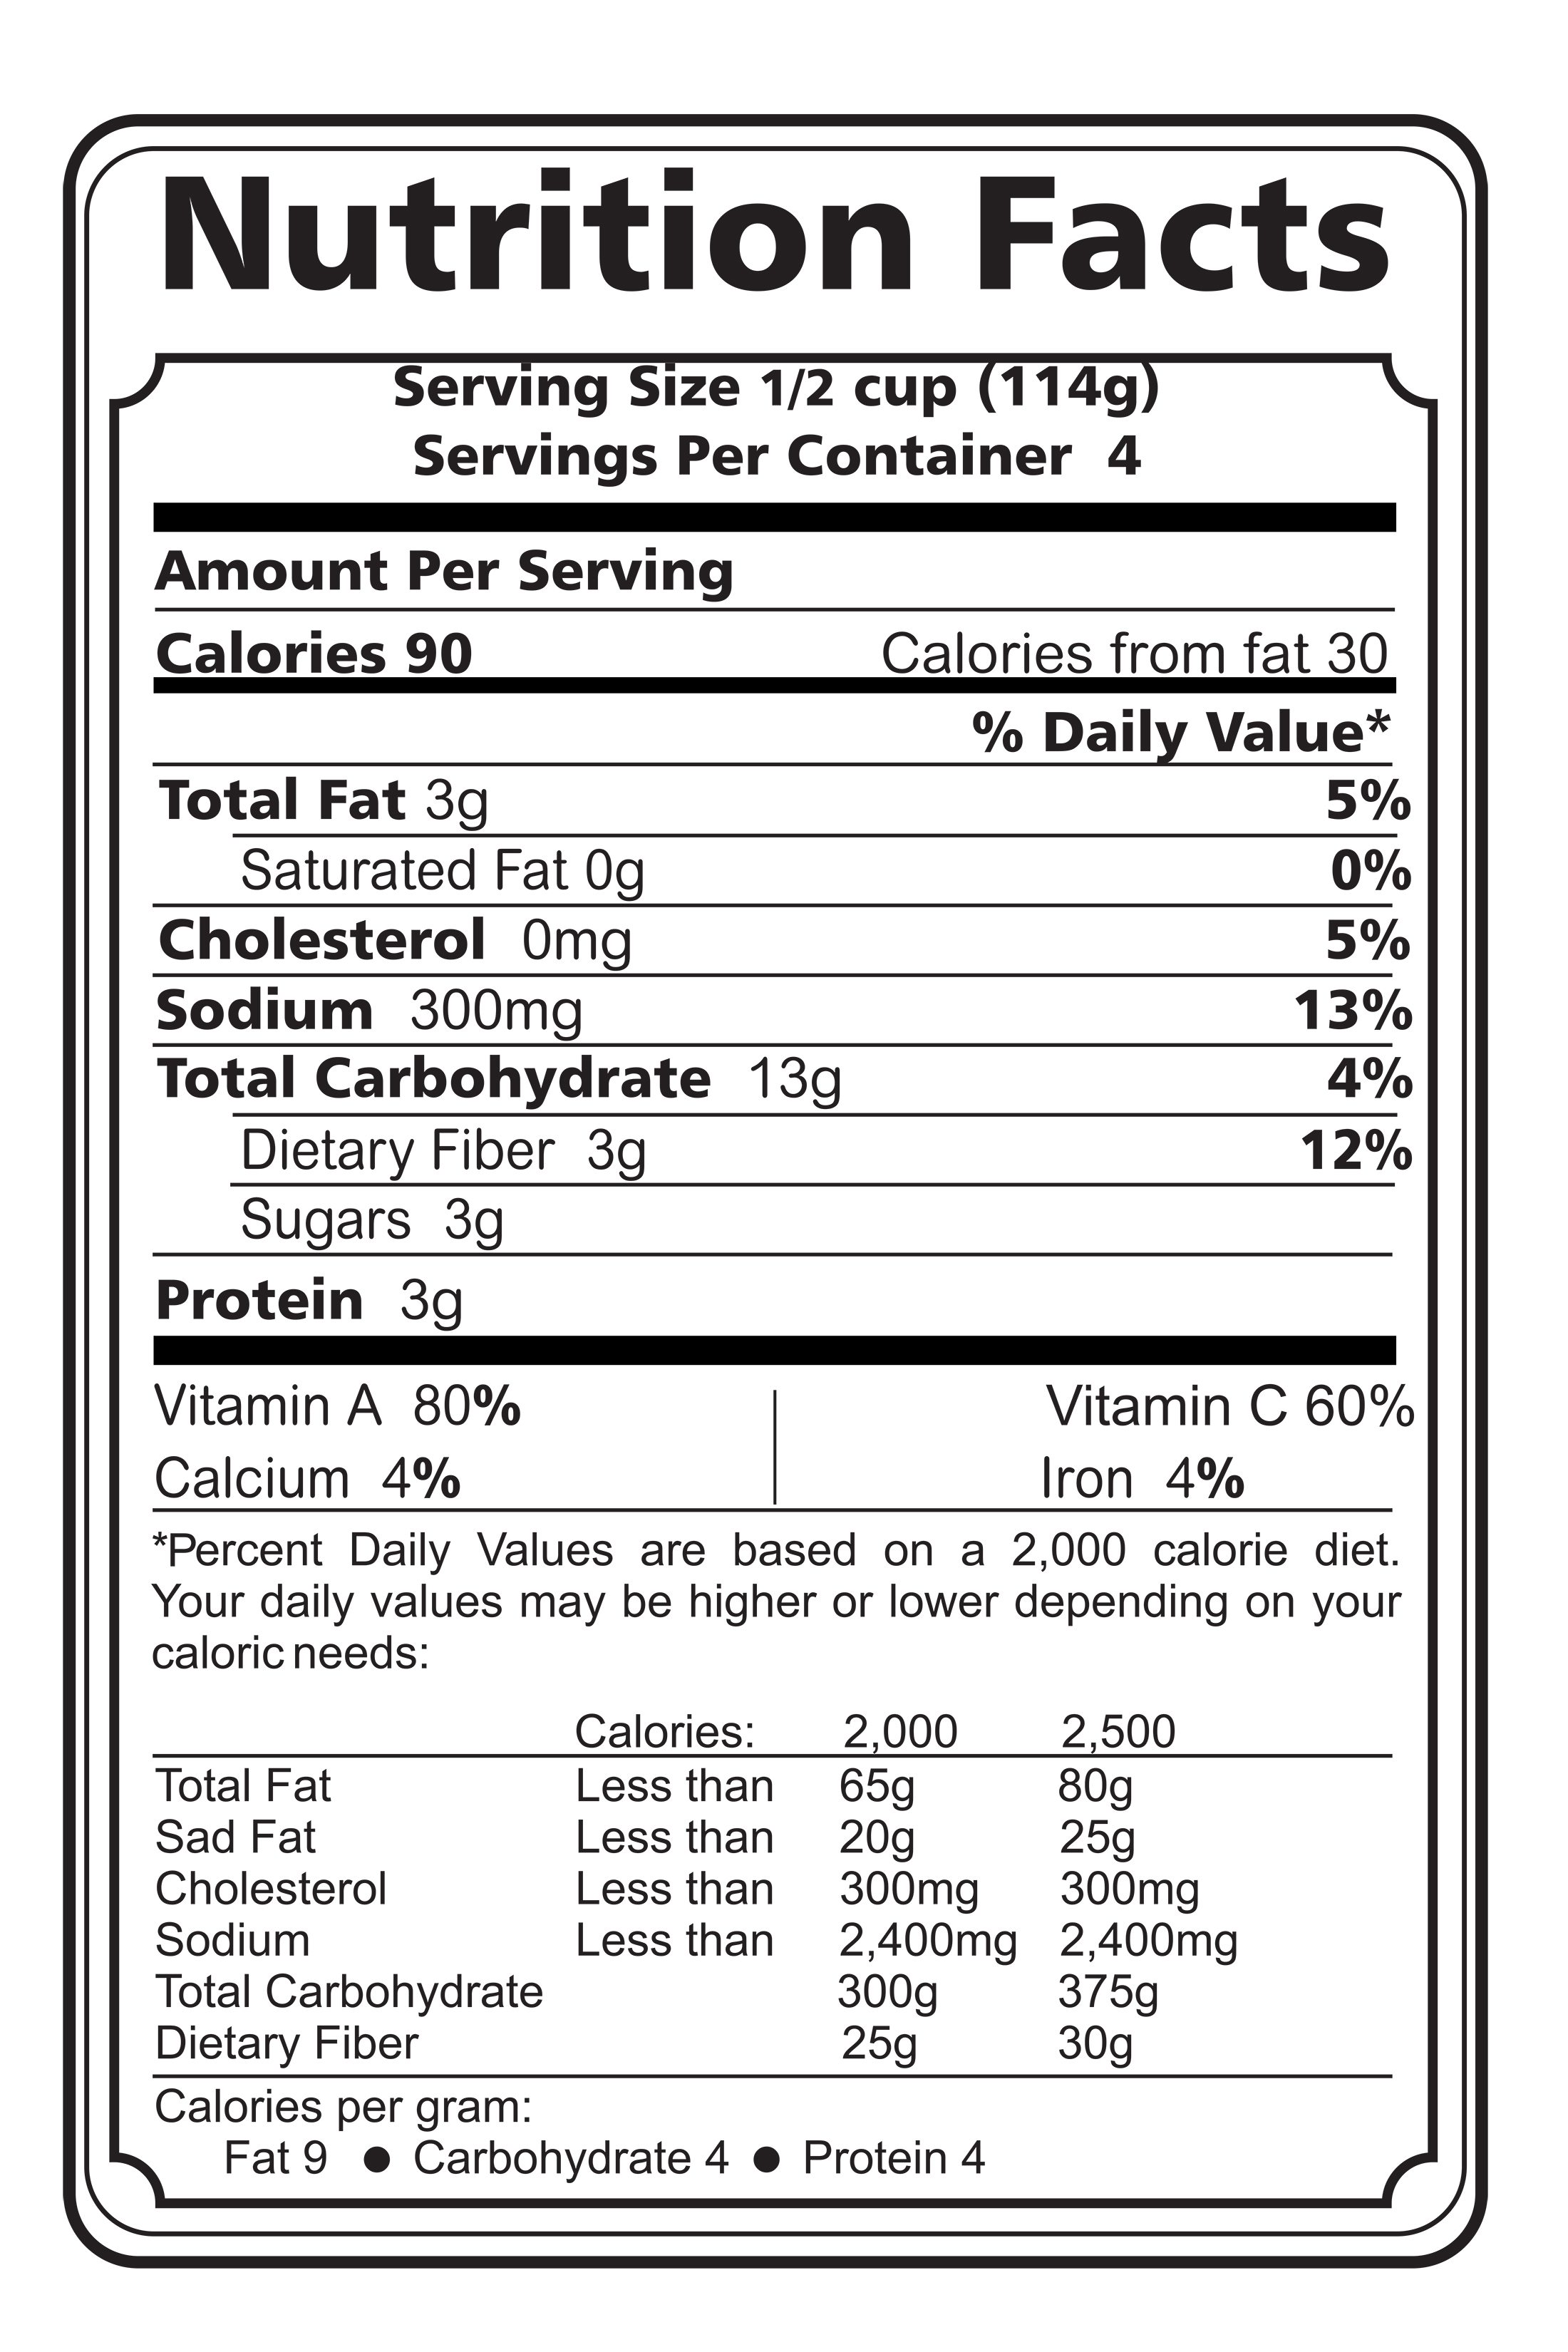 Worksheets Food Label Worksheets food label tips nutrition that you can download and print 8 5